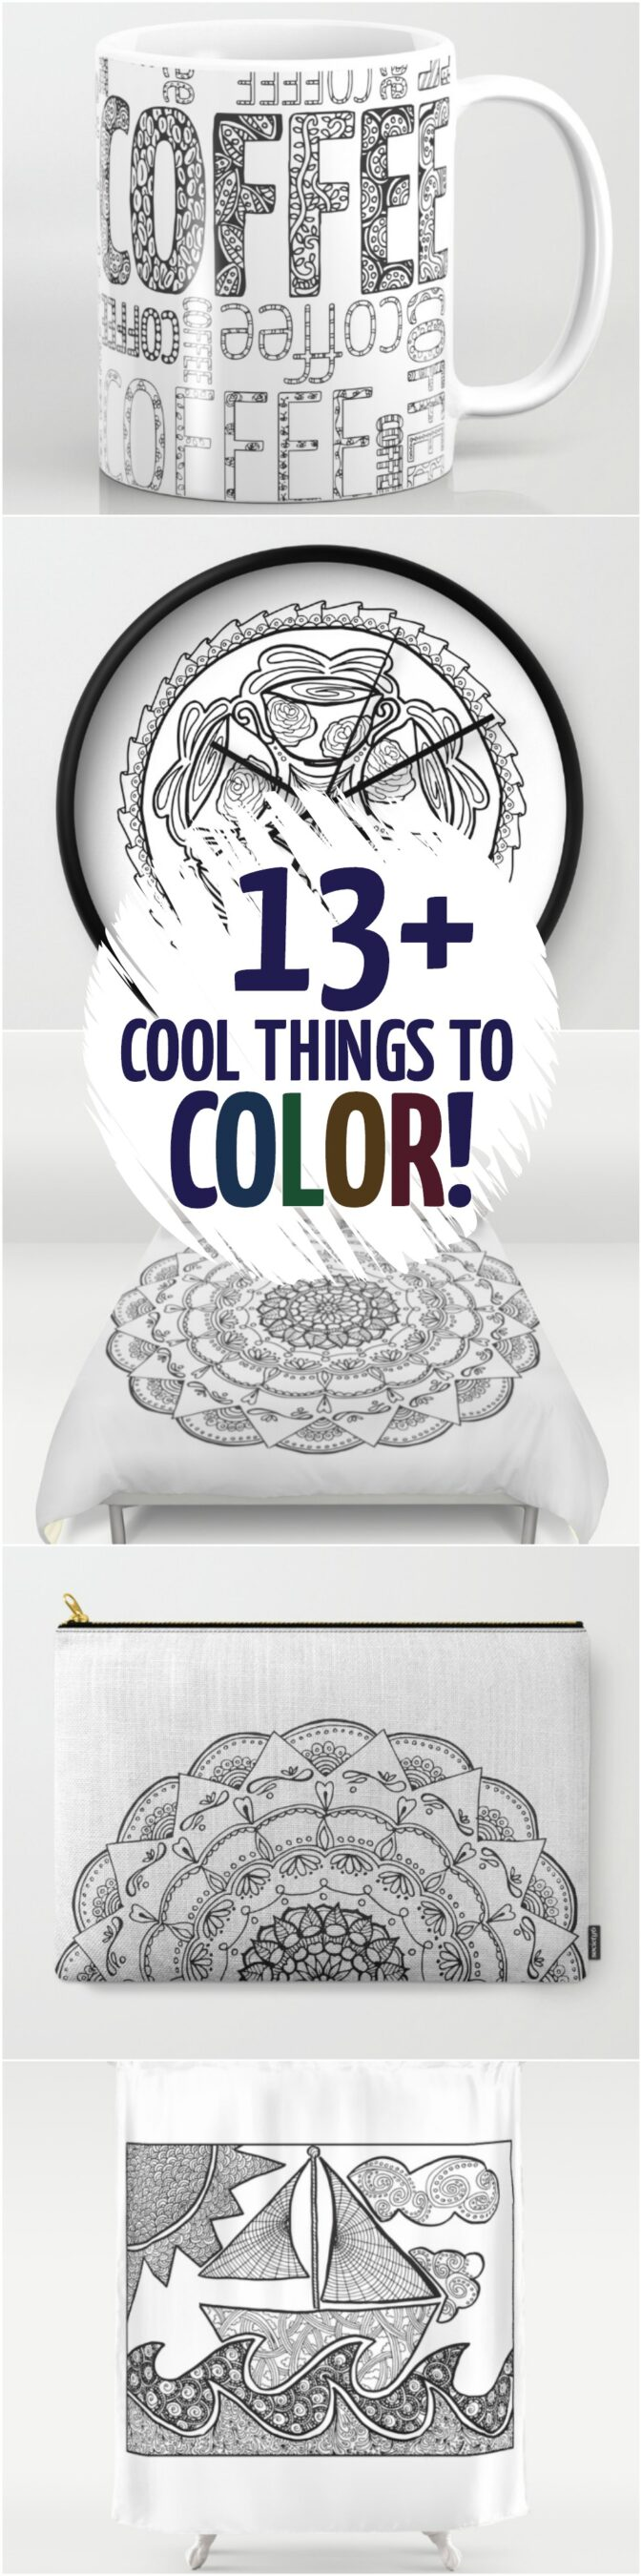 13 Cool things to color that arent coloring pages Moms and